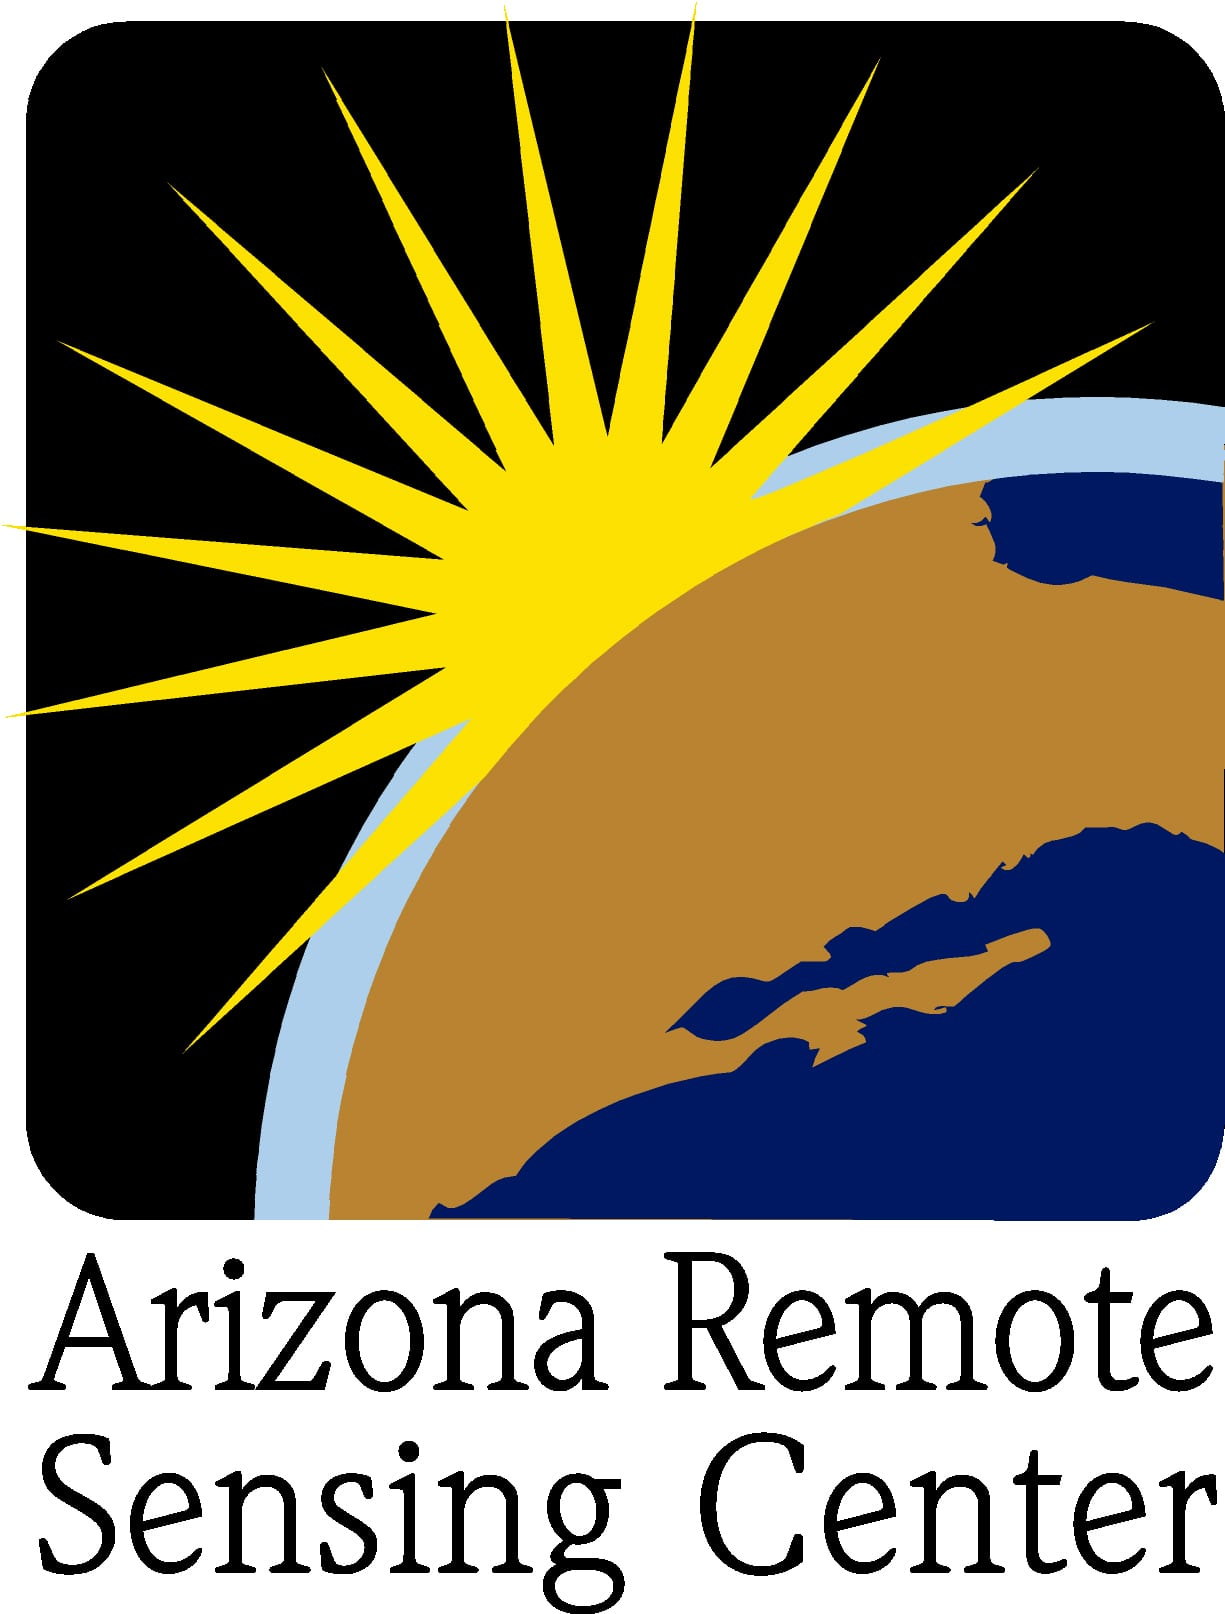 Arizona Remote Sensing Center